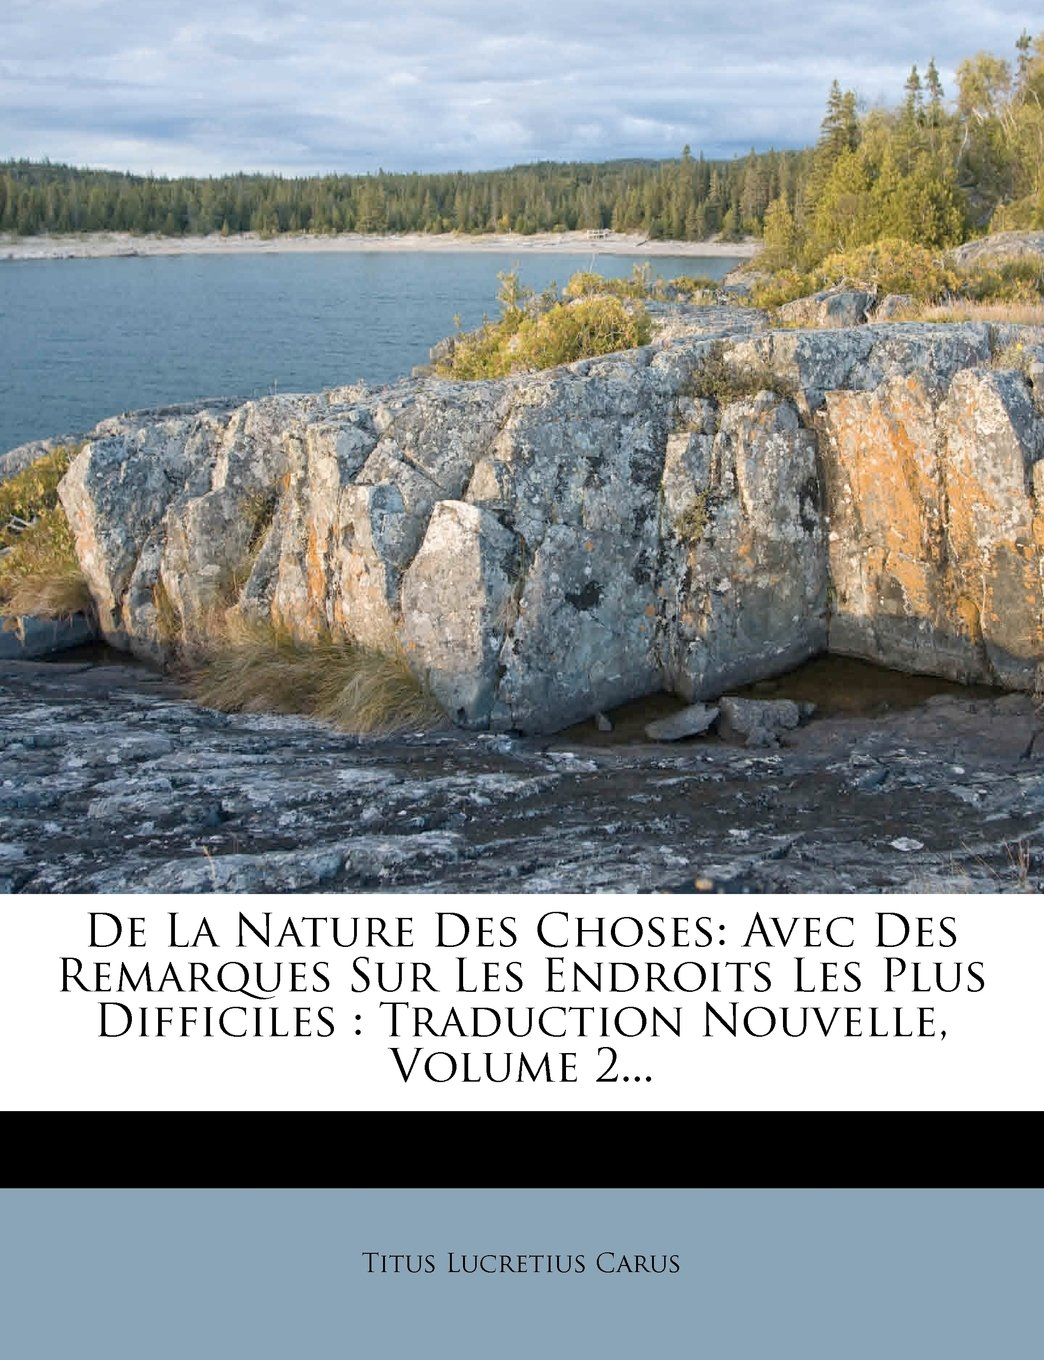 Download De La Nature Des Choses: Avec Des Remarques Sur Les Endroits Les Plus Difficiles : Traduction Nouvelle, Volume 2... (French Edition) Text fb2 book